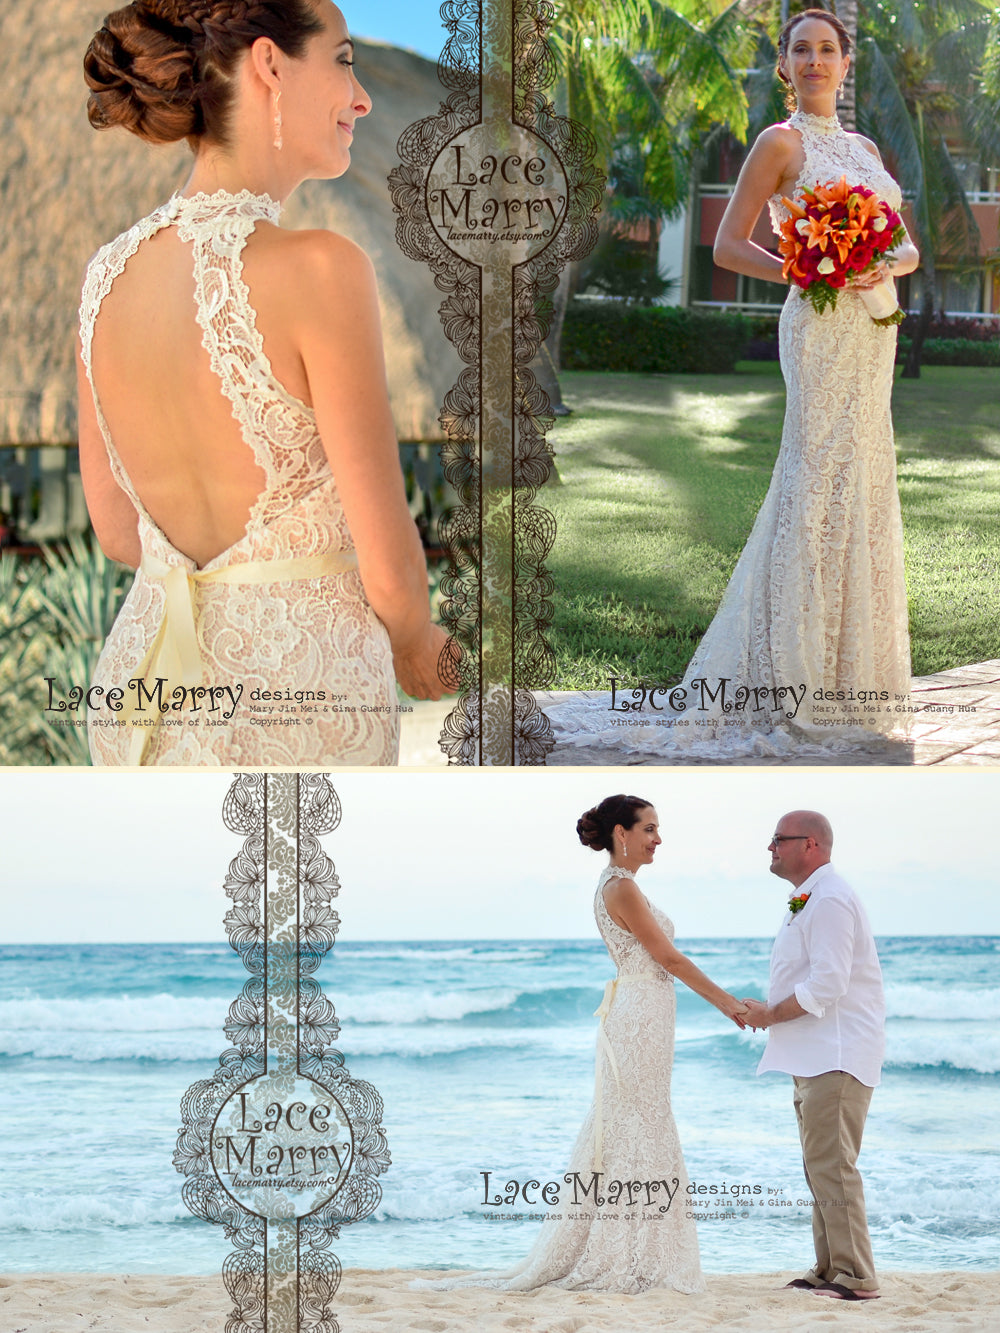 Gorgeous Venice Lace Wedding Dress in Slim Shape with Small Train